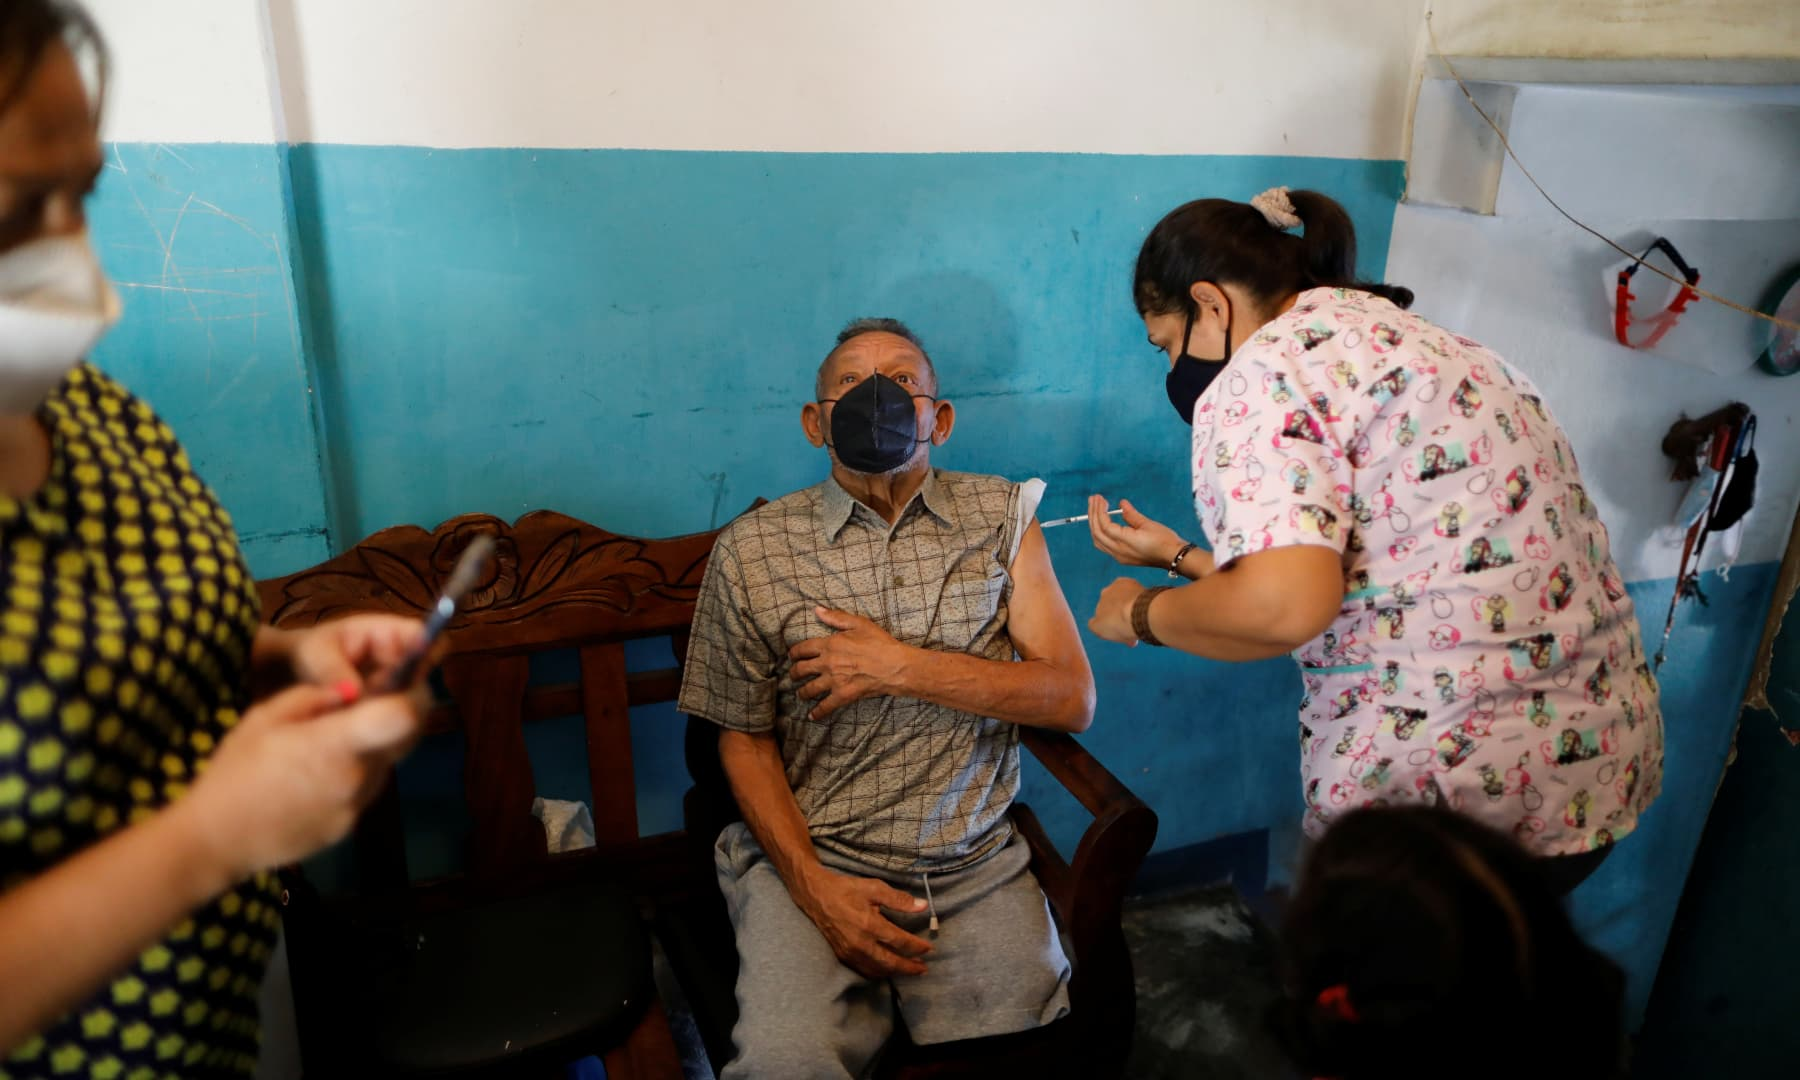 A man receives a dose of the Sinopharm vaccine against the coronavirus as healthcare workers go from door to door to inoculate the elderly and people with disabilities, in Caracas, Venezuela, on September 18, 2021. — Reuters